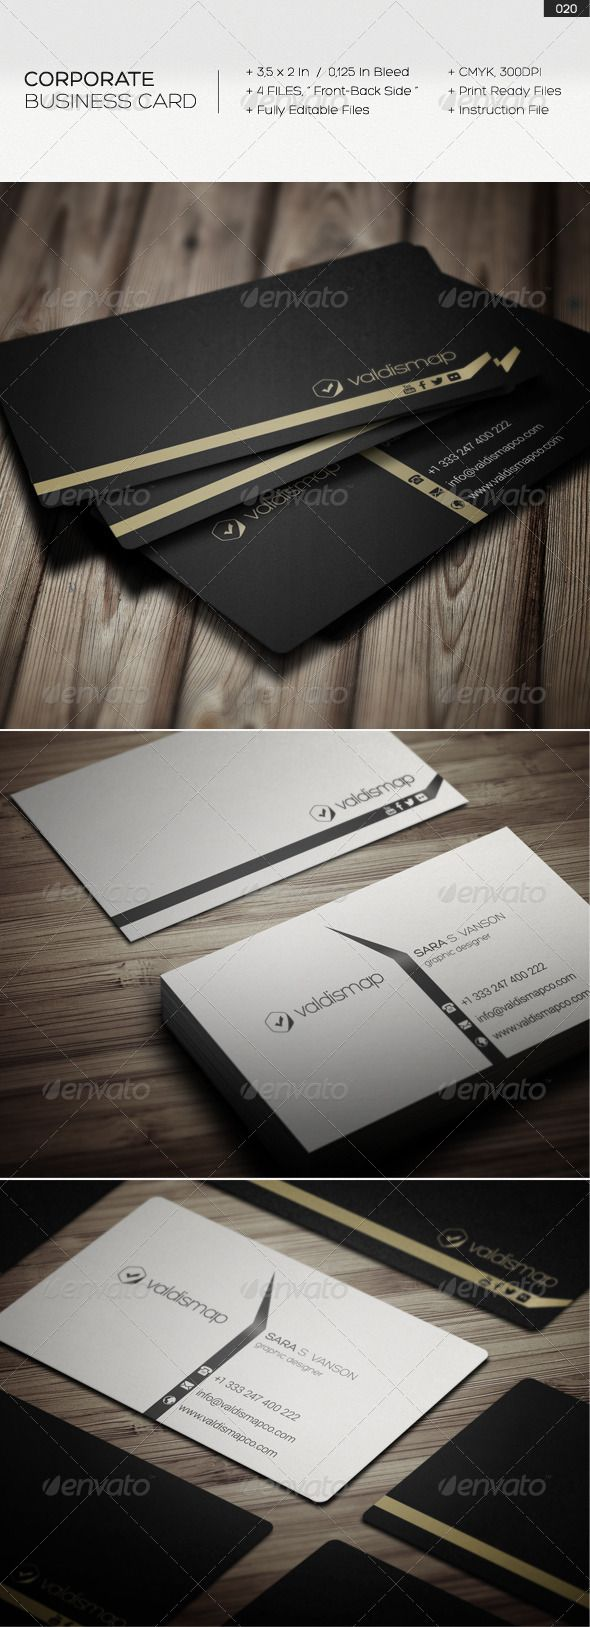 Corporate business card 020 corporate business business cards and corporate business card 020 photoshop psd typeface photo available here httpsgraphicriveritemcorporate business card 0208759212refpxcr colourmoves